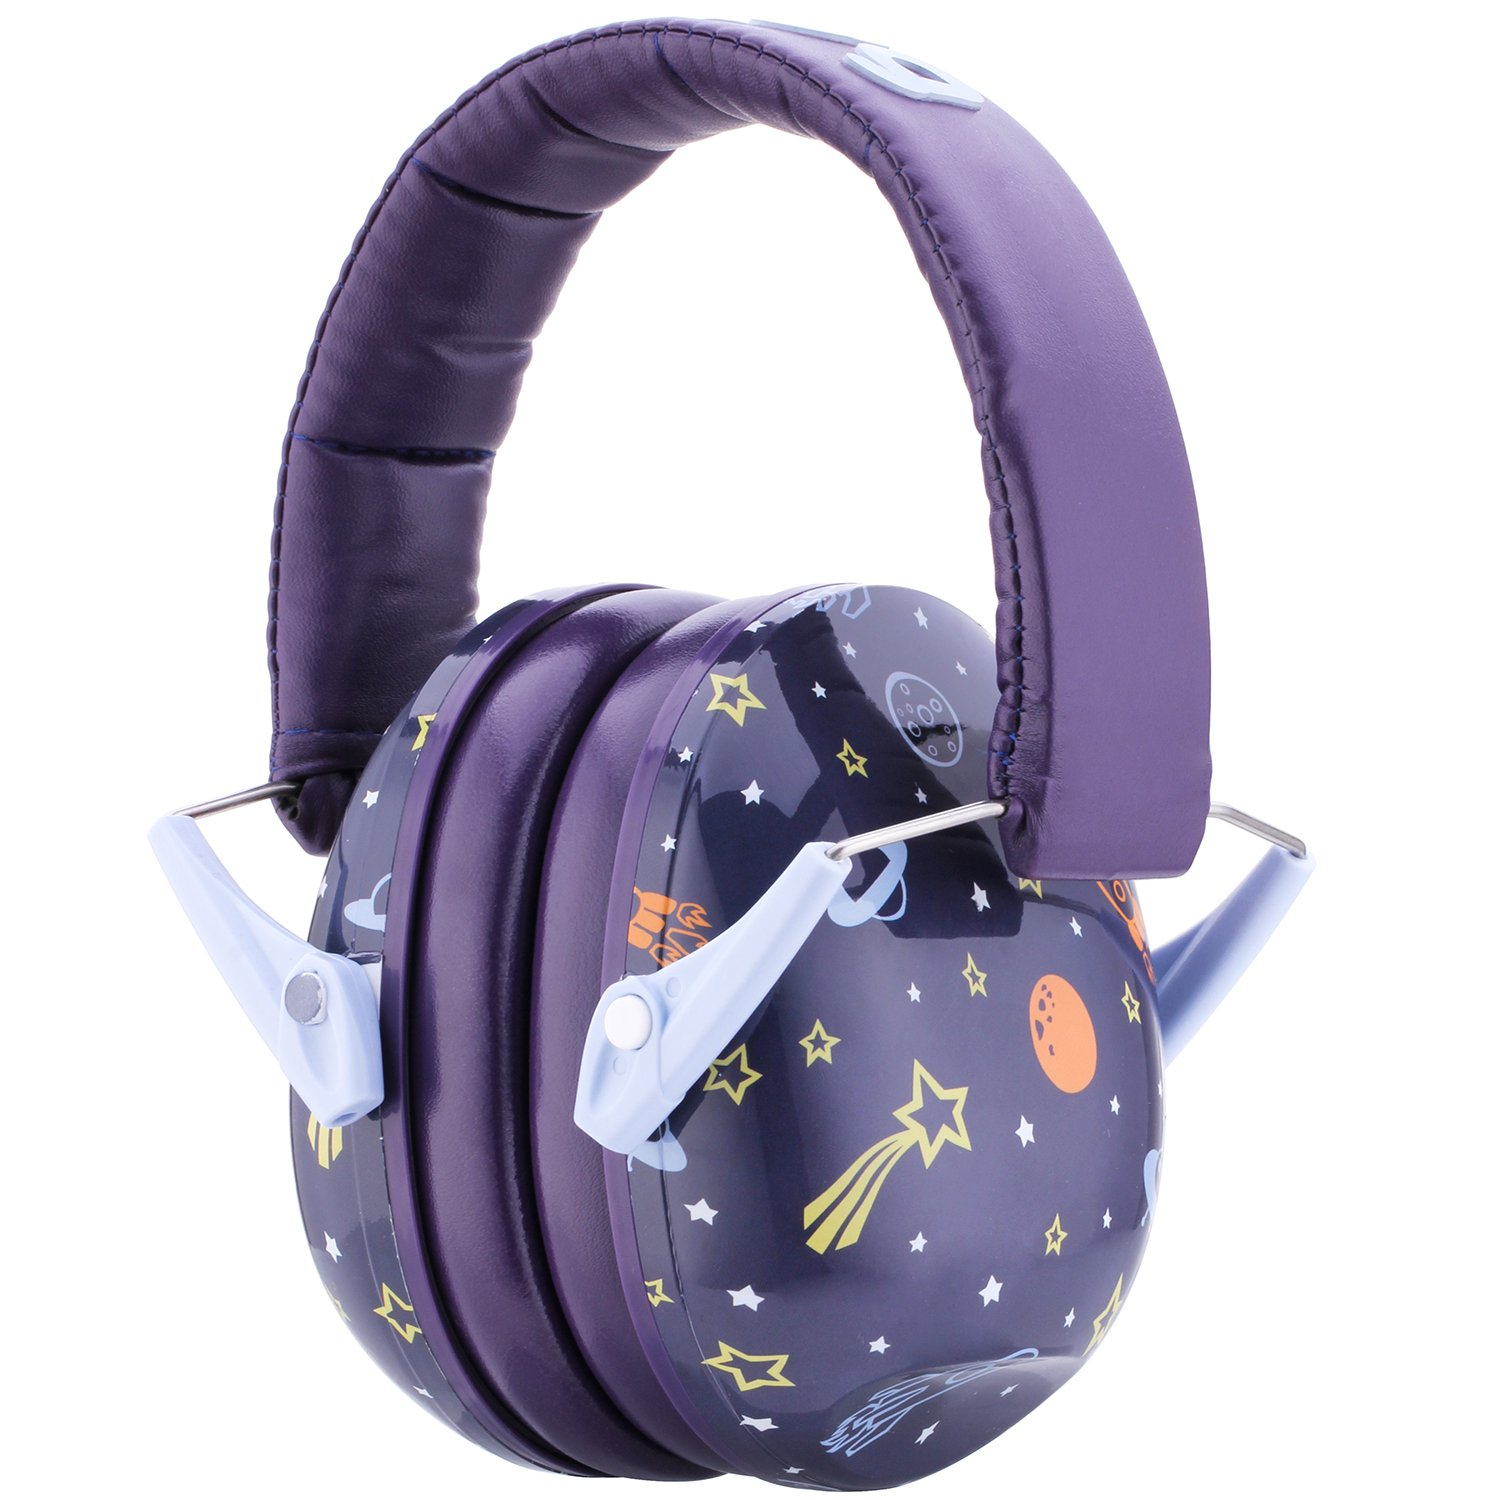 Snug Kids Earmuffs/Hearing Protectors – Adjustable Headband Ear Defenders for Children and Adults (Space) by Snug (Image #1)